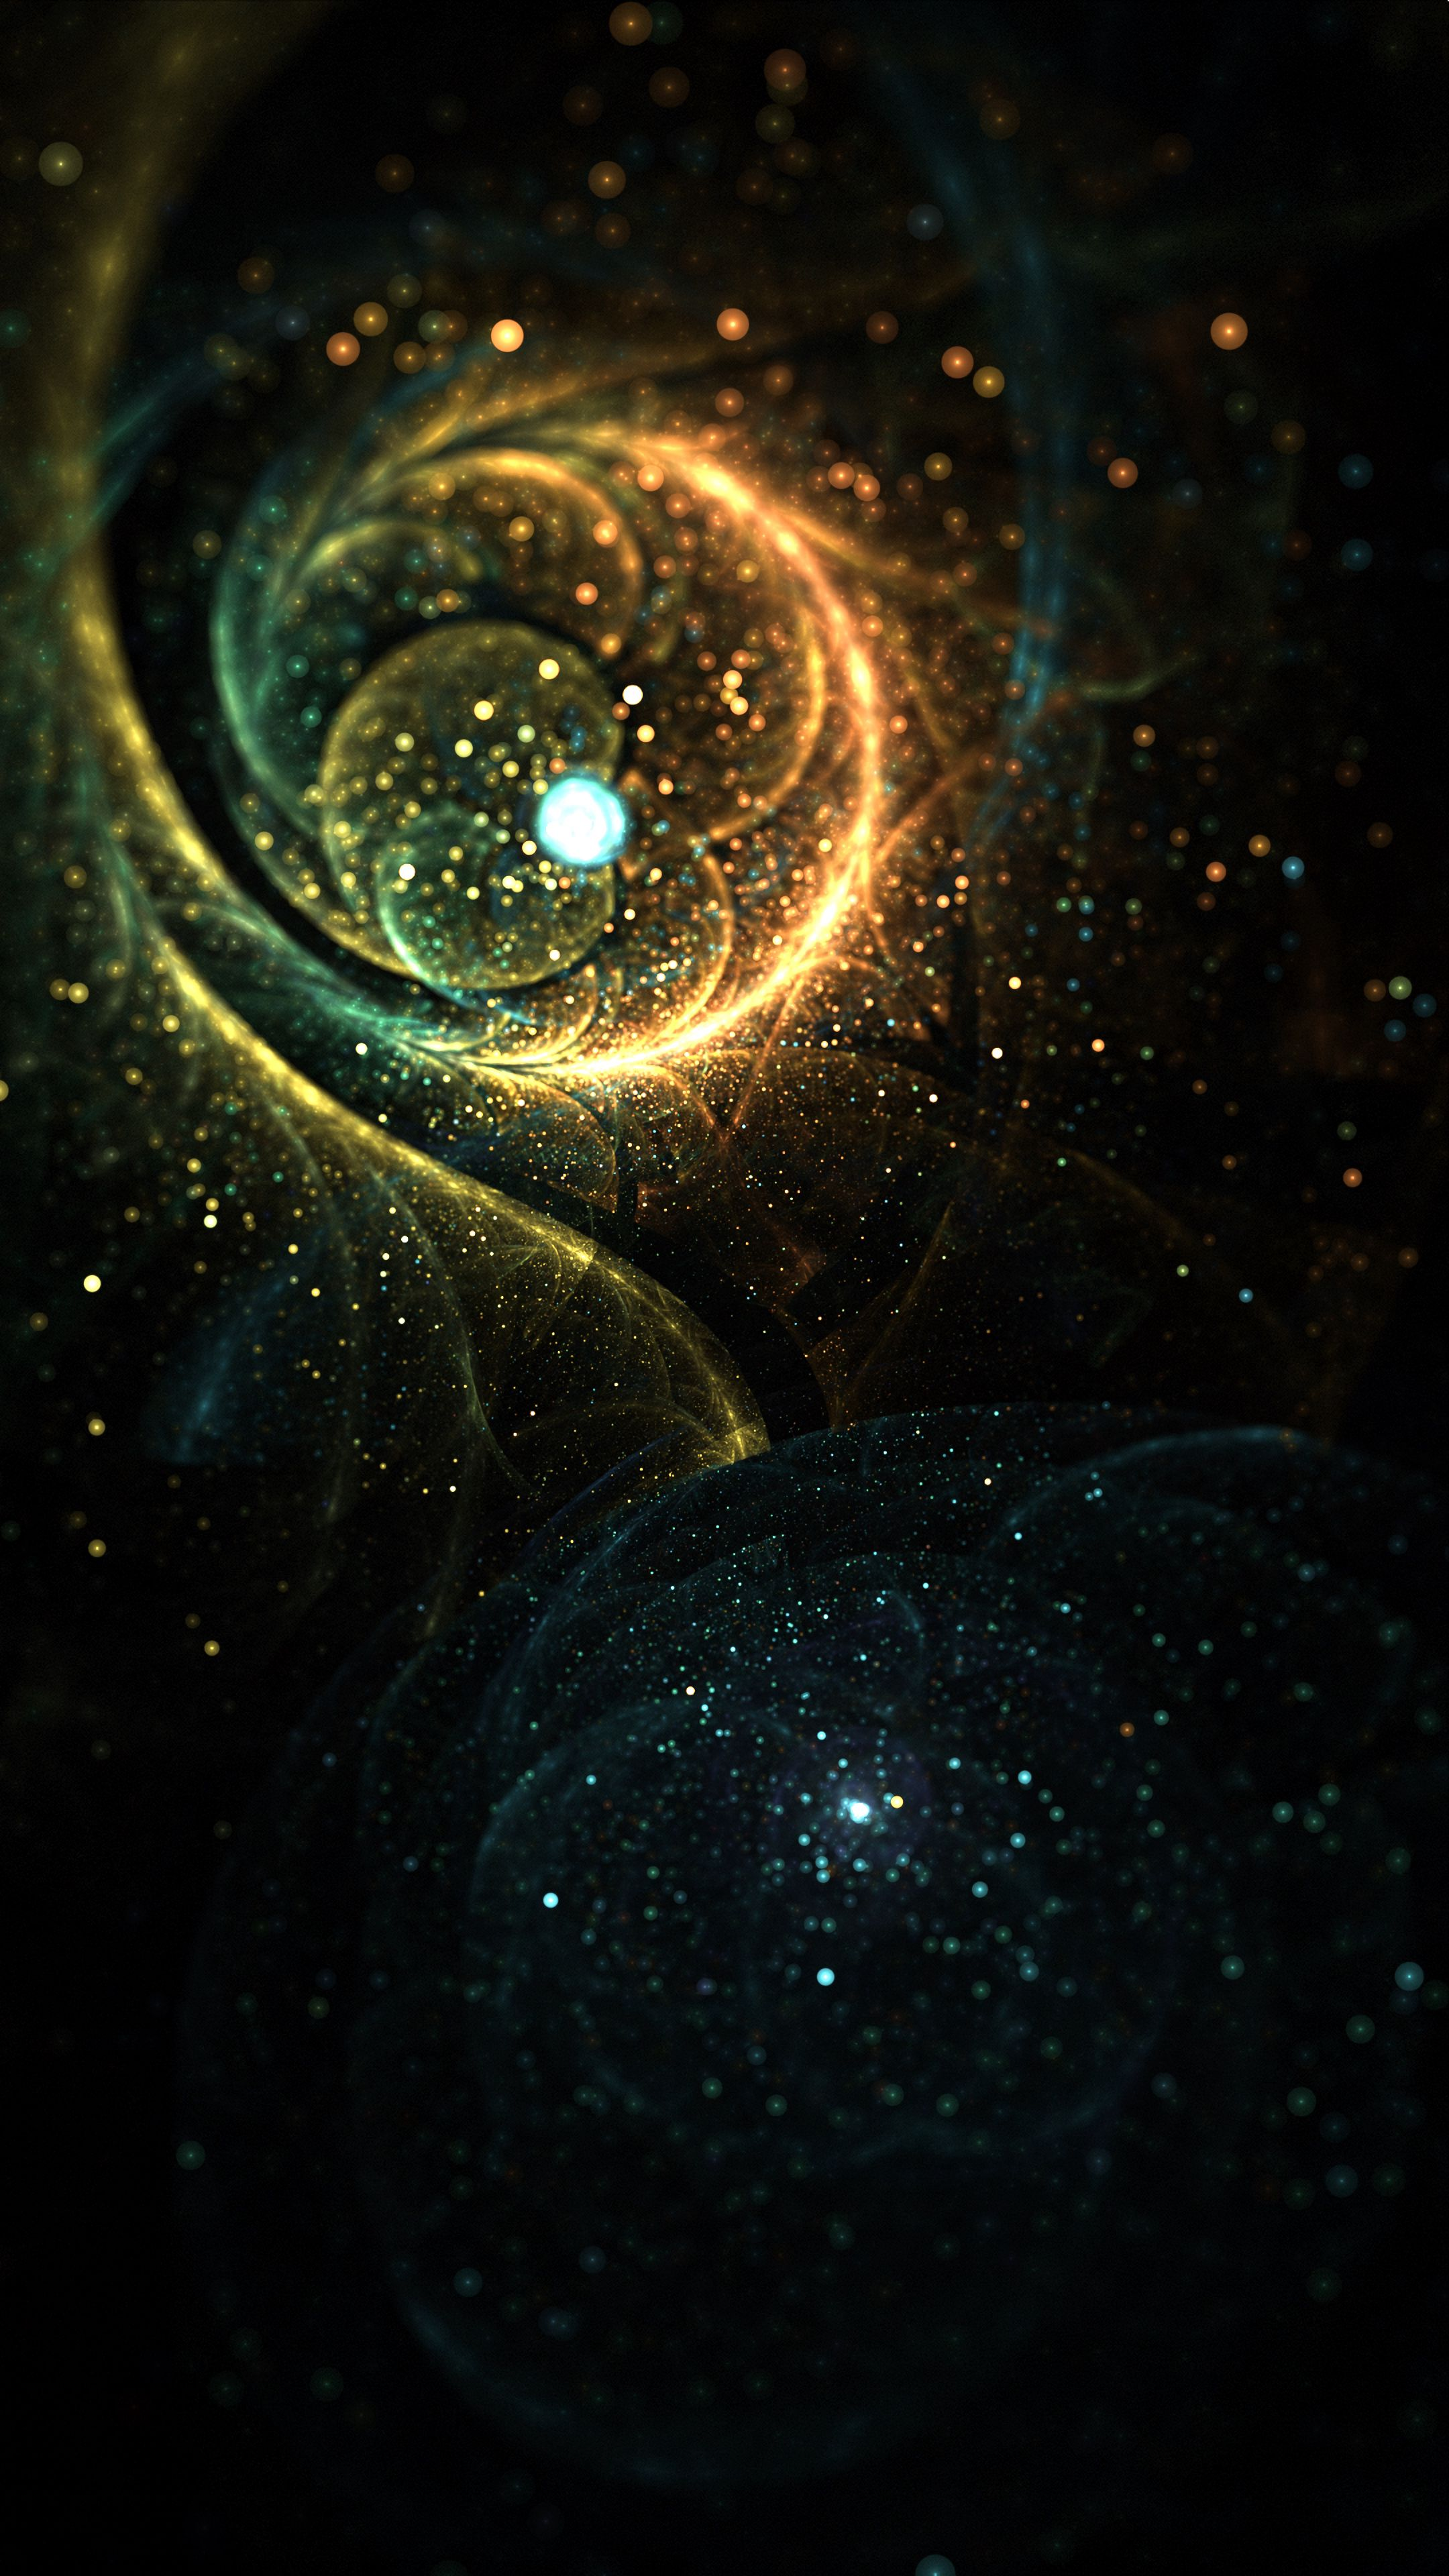 121592 Screensavers and Wallpapers Sparks for phone. Download Abstract, Shine, Bright, Sparks, Brilliance, Fractal, Glow pictures for free